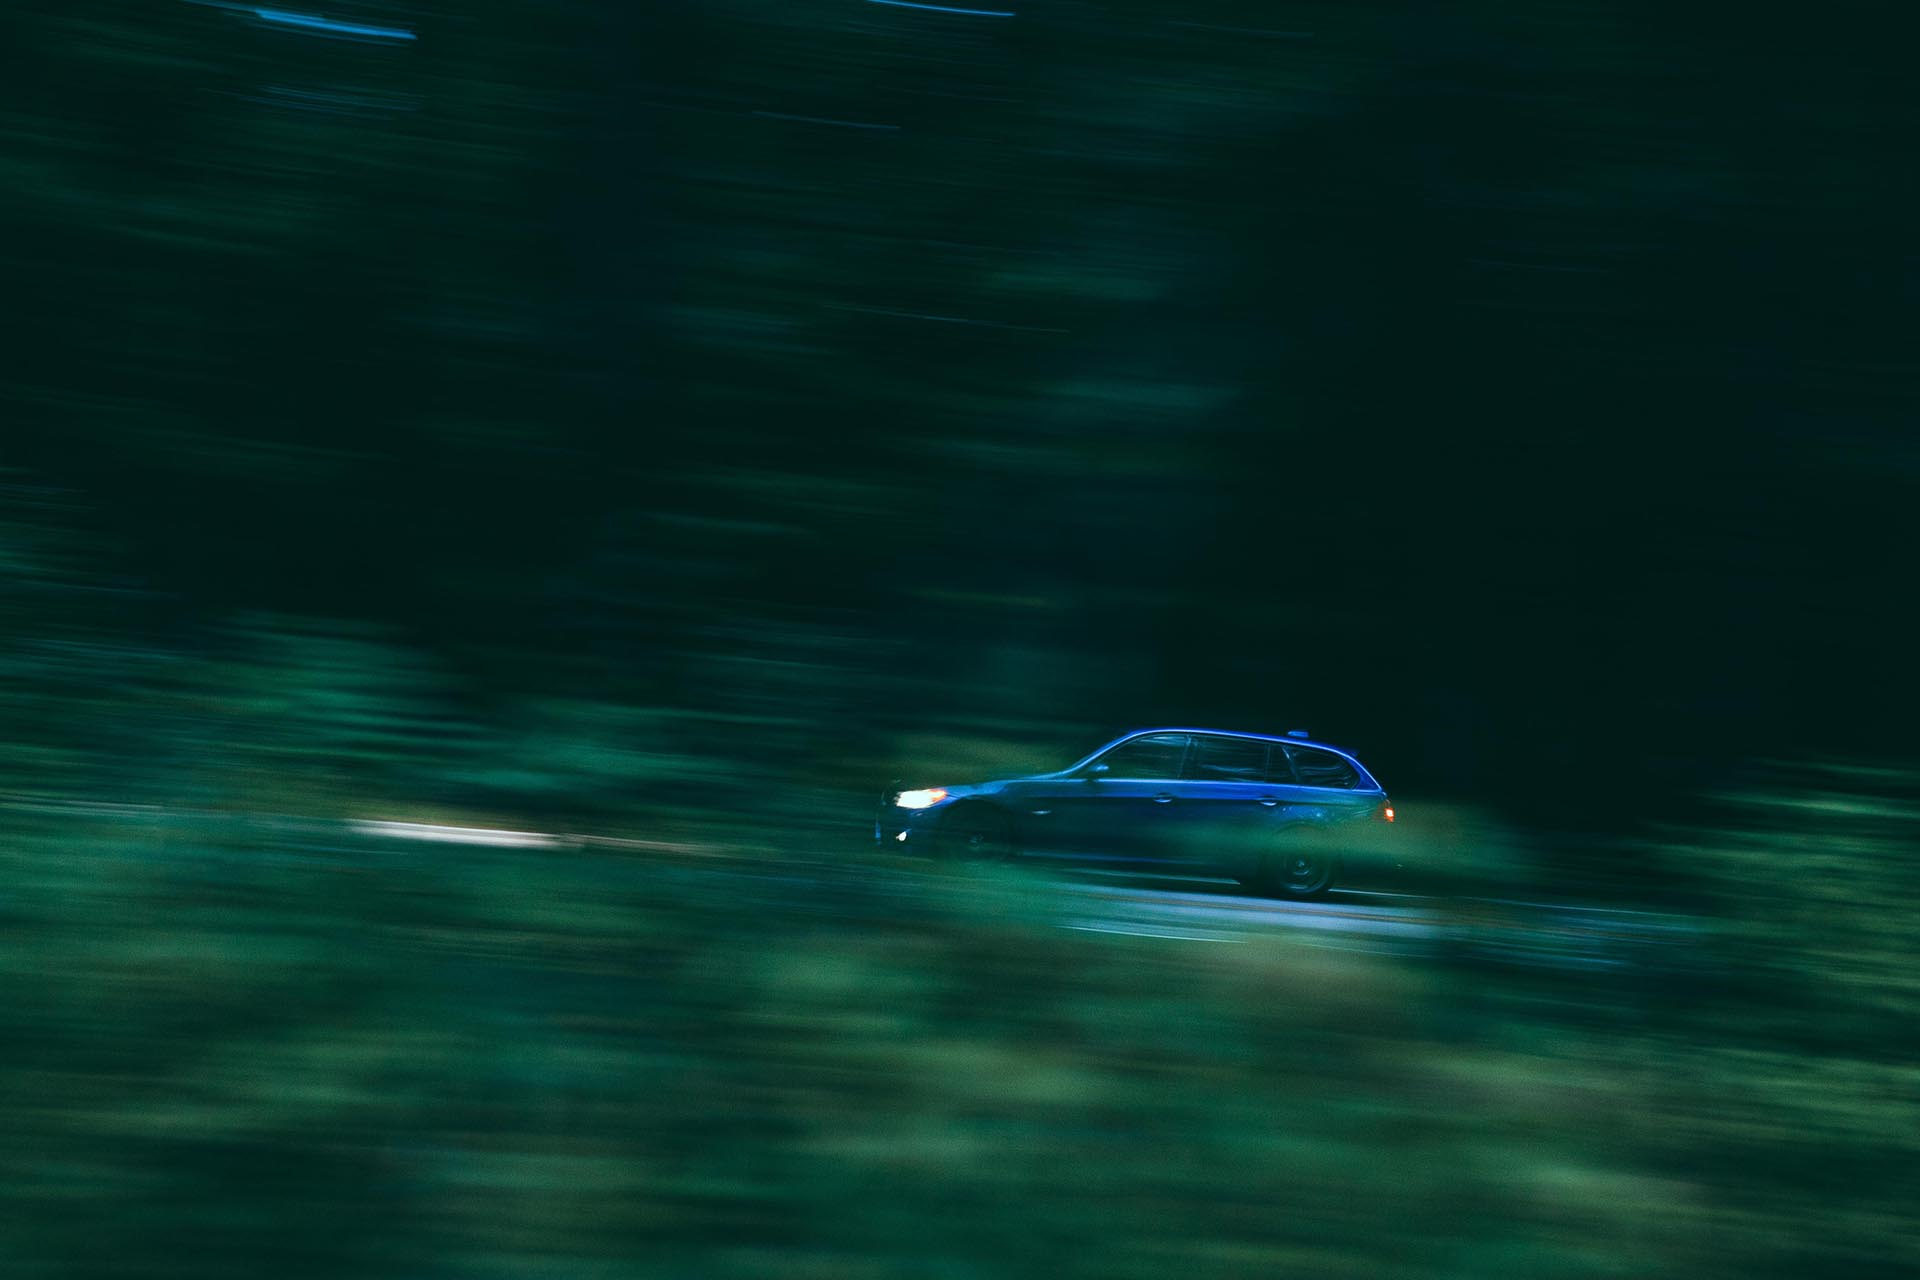 03_BMW E91 335d panning shot at night